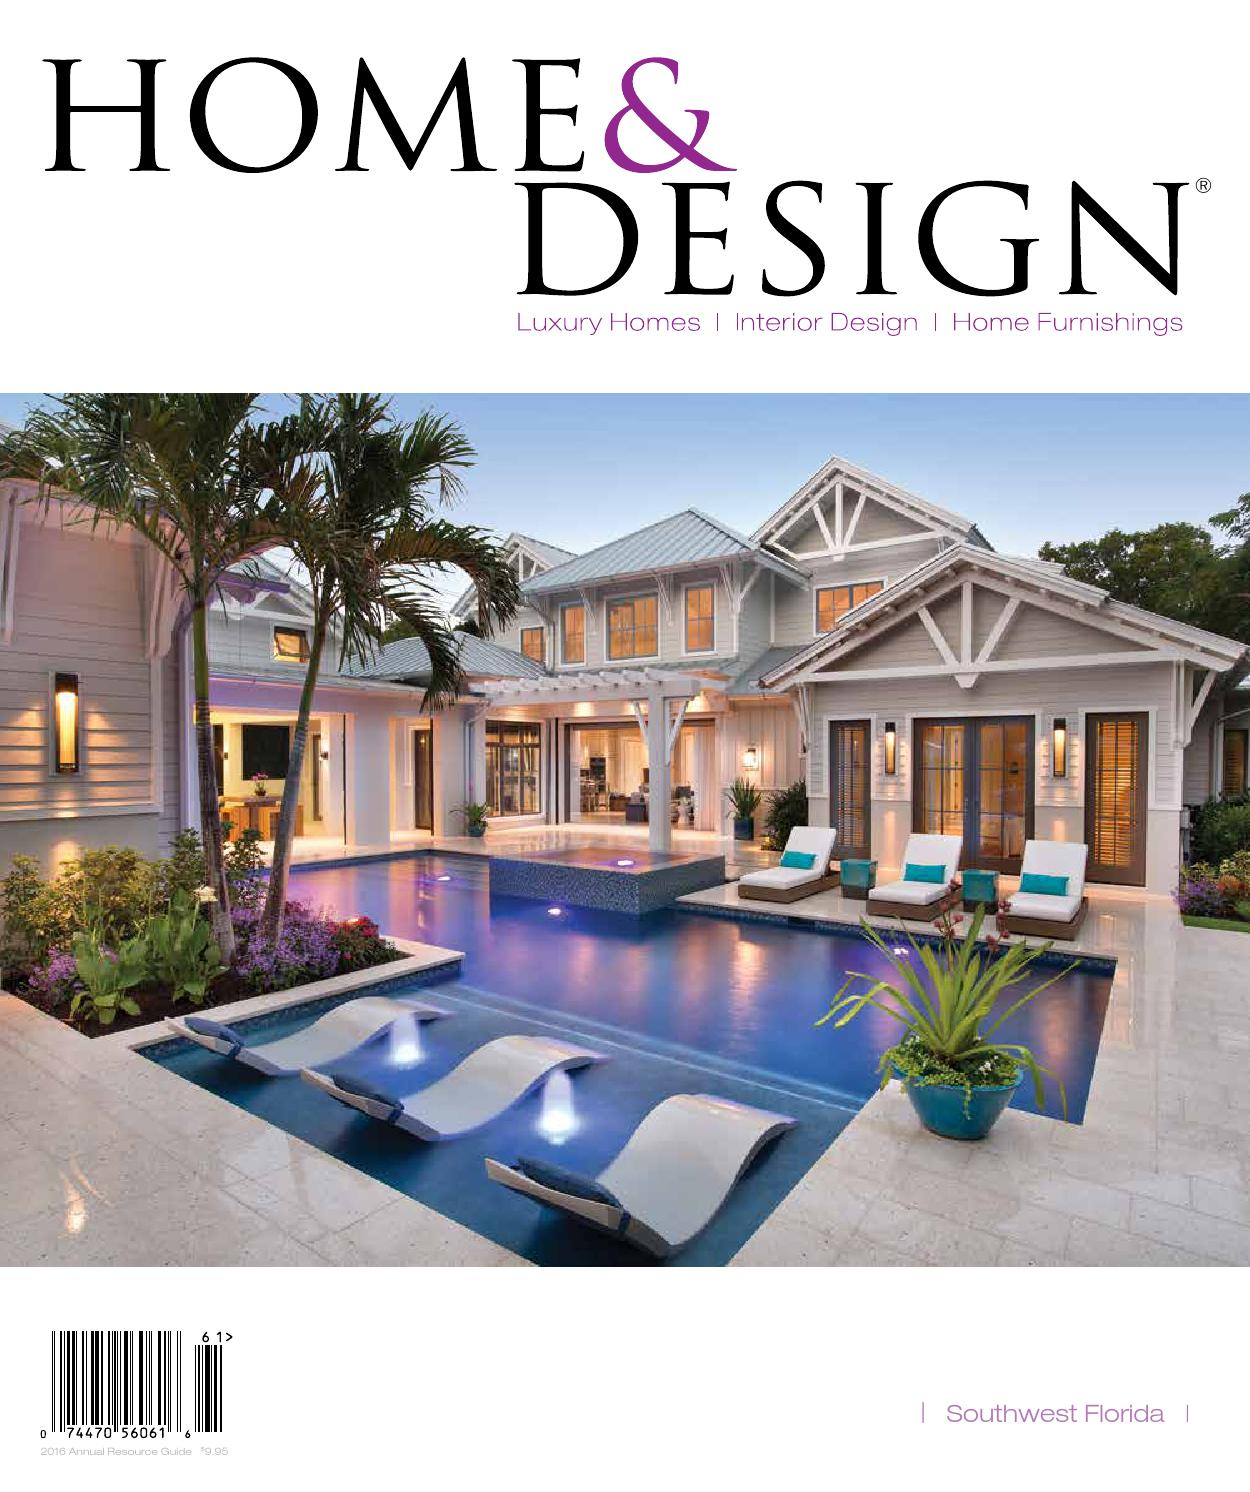 home design magazine annual resource guide 2016 southwest florida edition by anthony spano issuu - Home Design Magazine